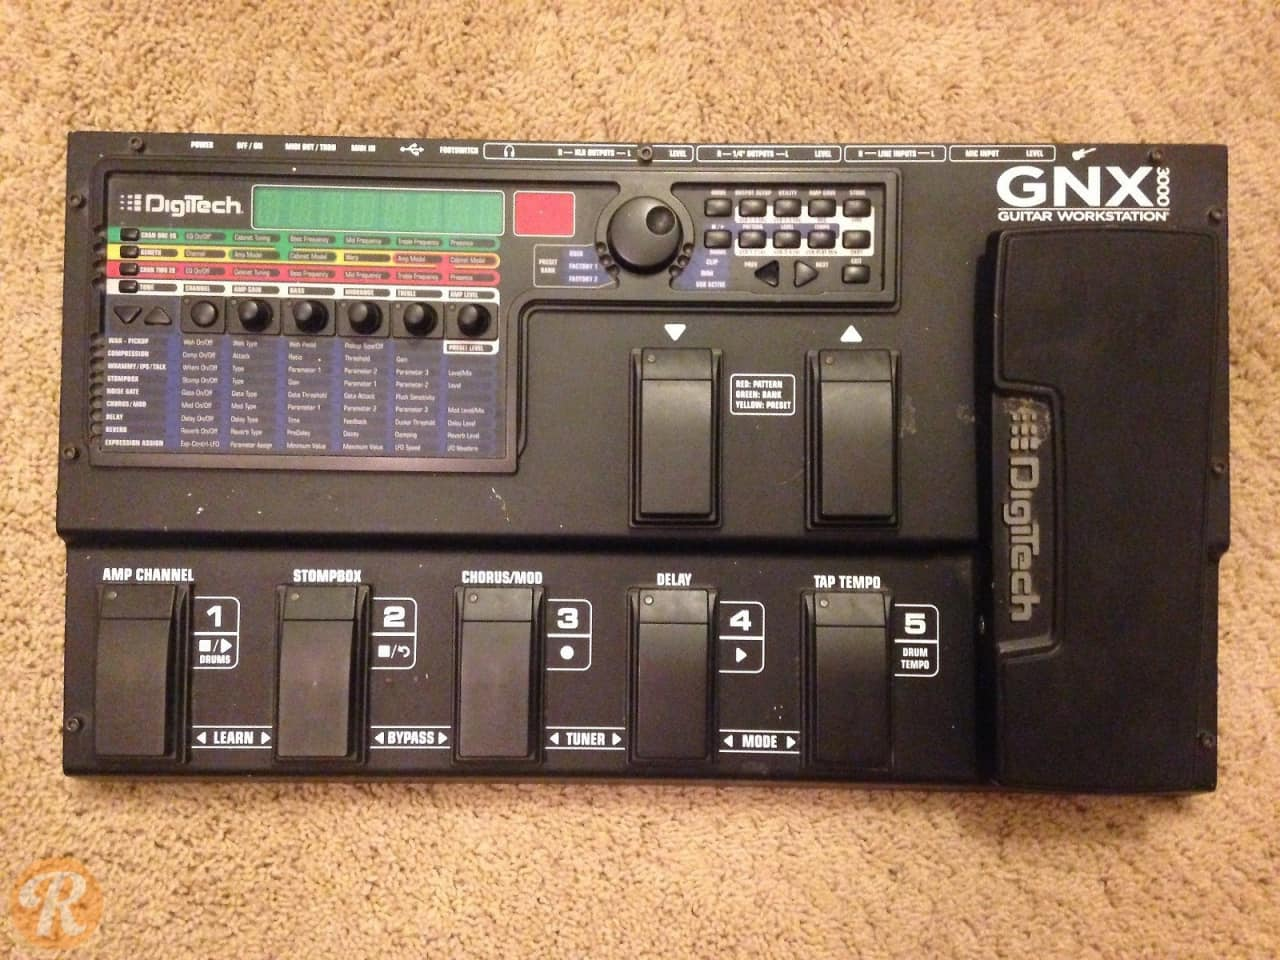 digitech gnx3000 multi effects price guide reverb. Black Bedroom Furniture Sets. Home Design Ideas